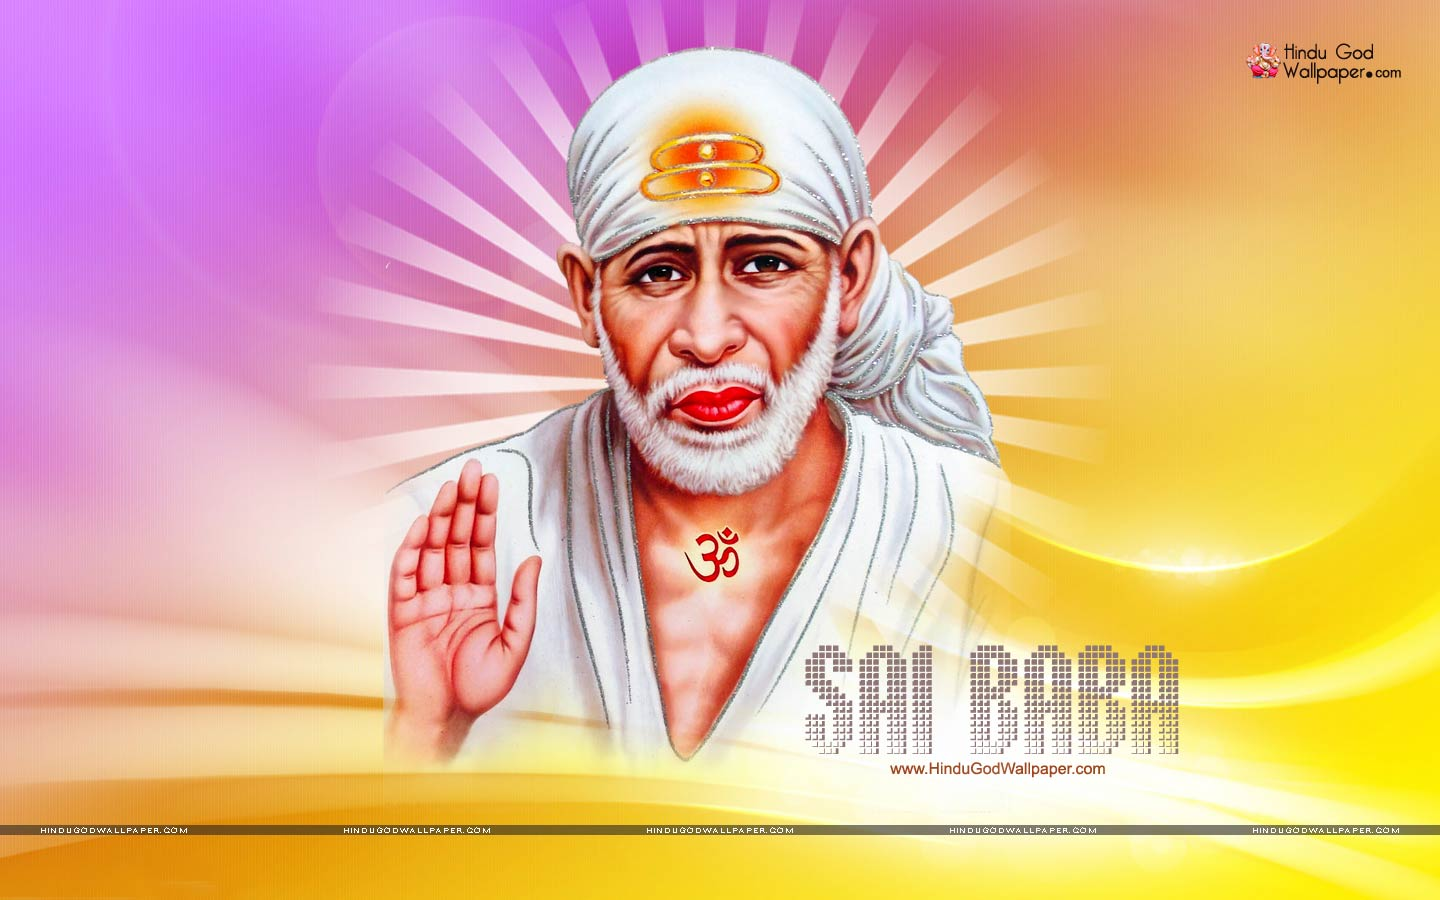 Sai Baba Wallpaper Full Size Hd Images Photos Free Download